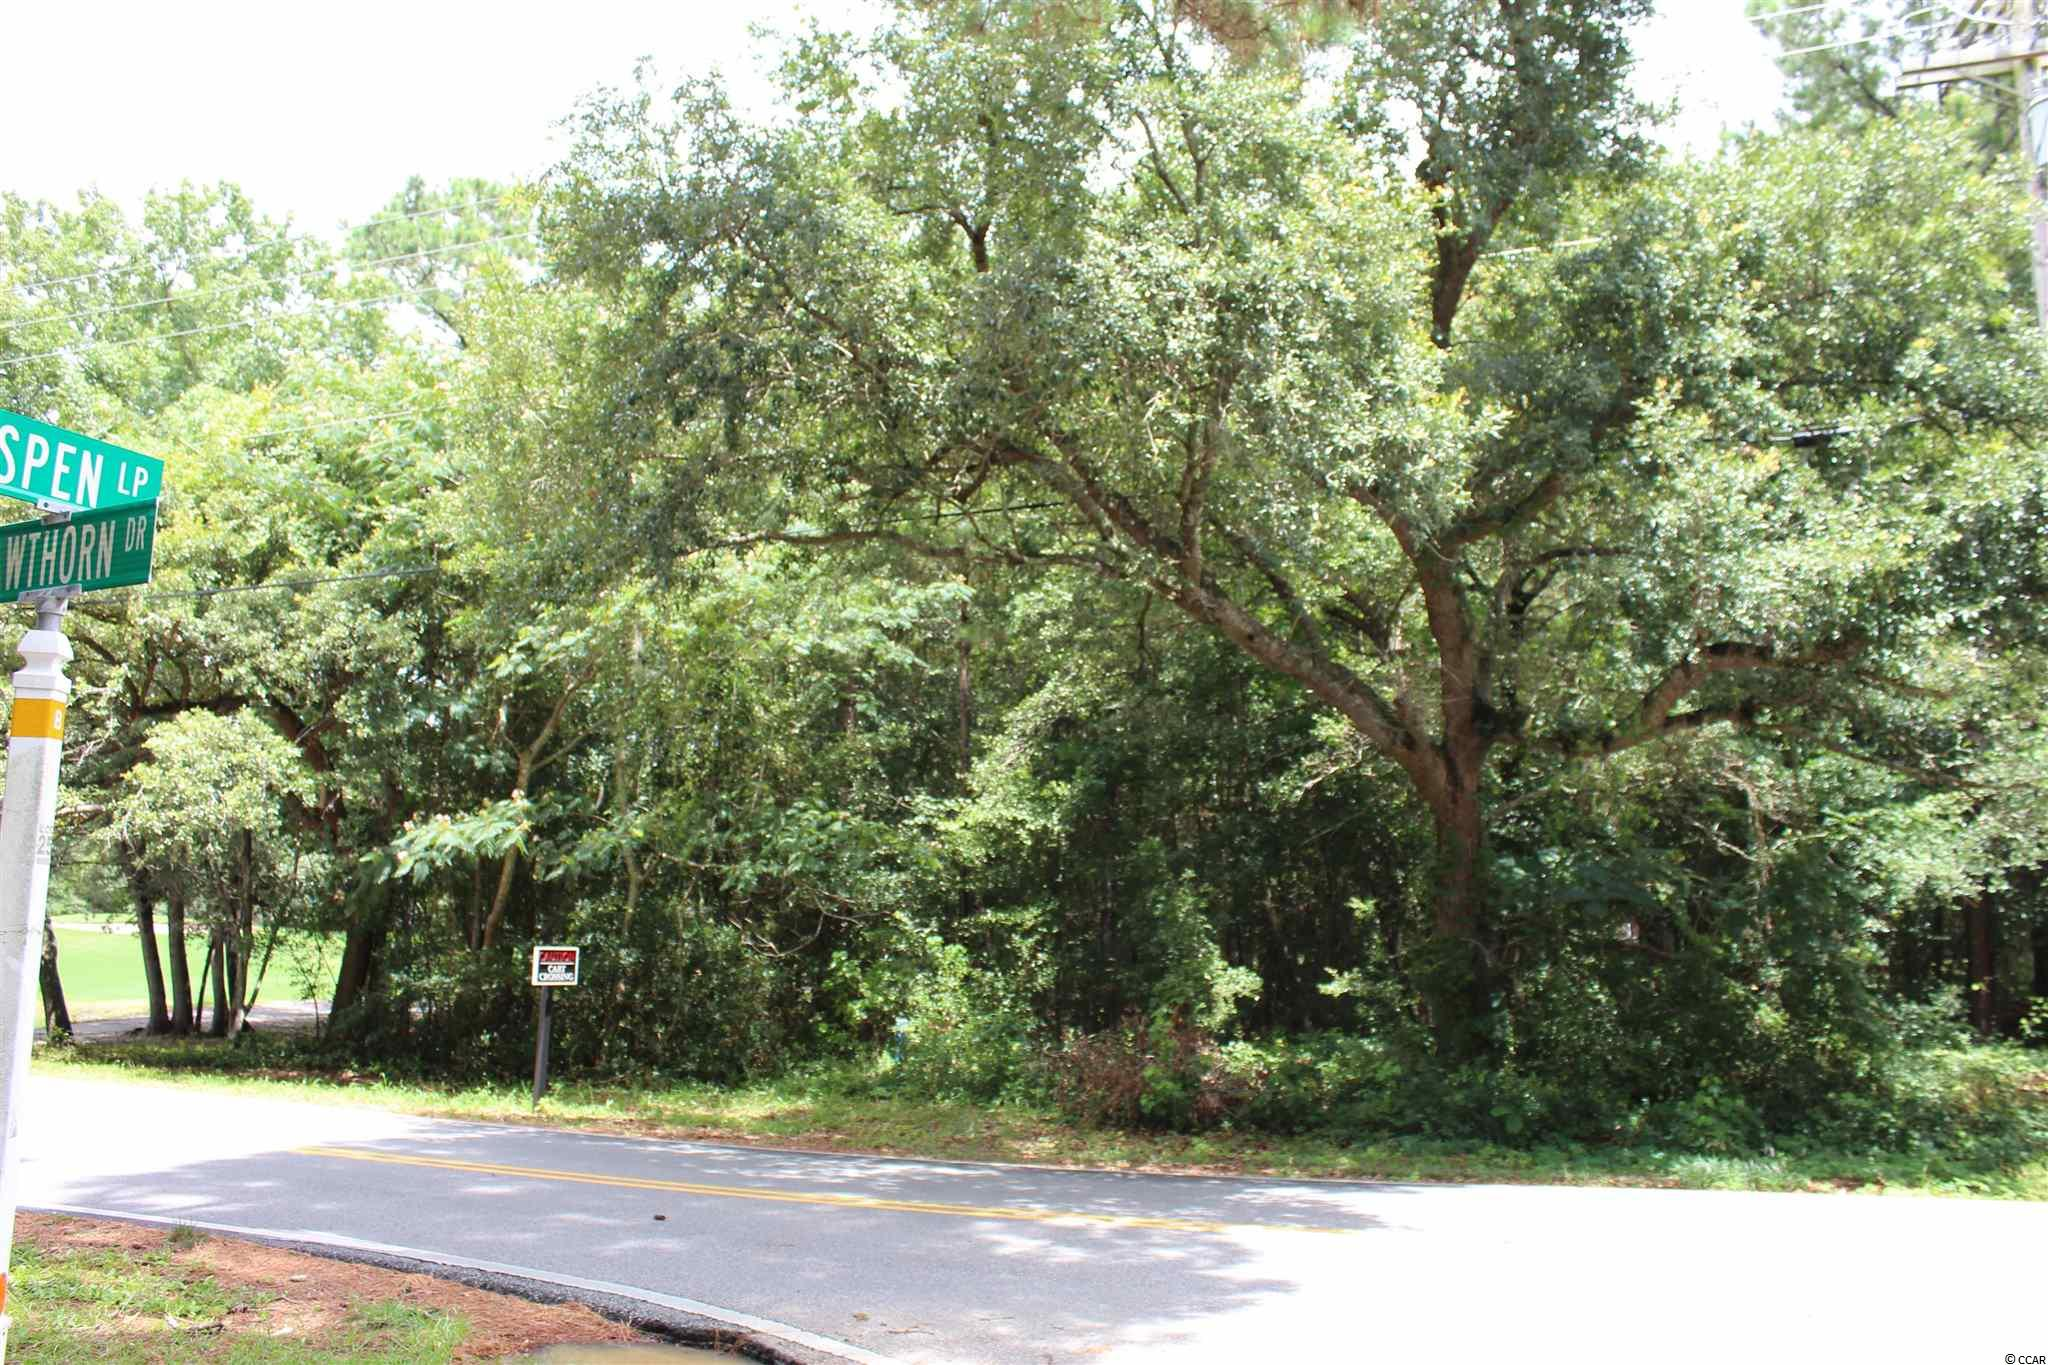 Beautiful wooded lot in Pawleys Island, SC.  Views of the pond and the elevated 10th green of Litchfield Country Club Golf Course giving you great views to enjoy your morning coffee or evening cocktails on your future deck. The best part is that you are minutes from the beach and the public boat landing on the Waccamaw River. Convenient to great local shops and dining in beautiful Pawleys Island, SC.